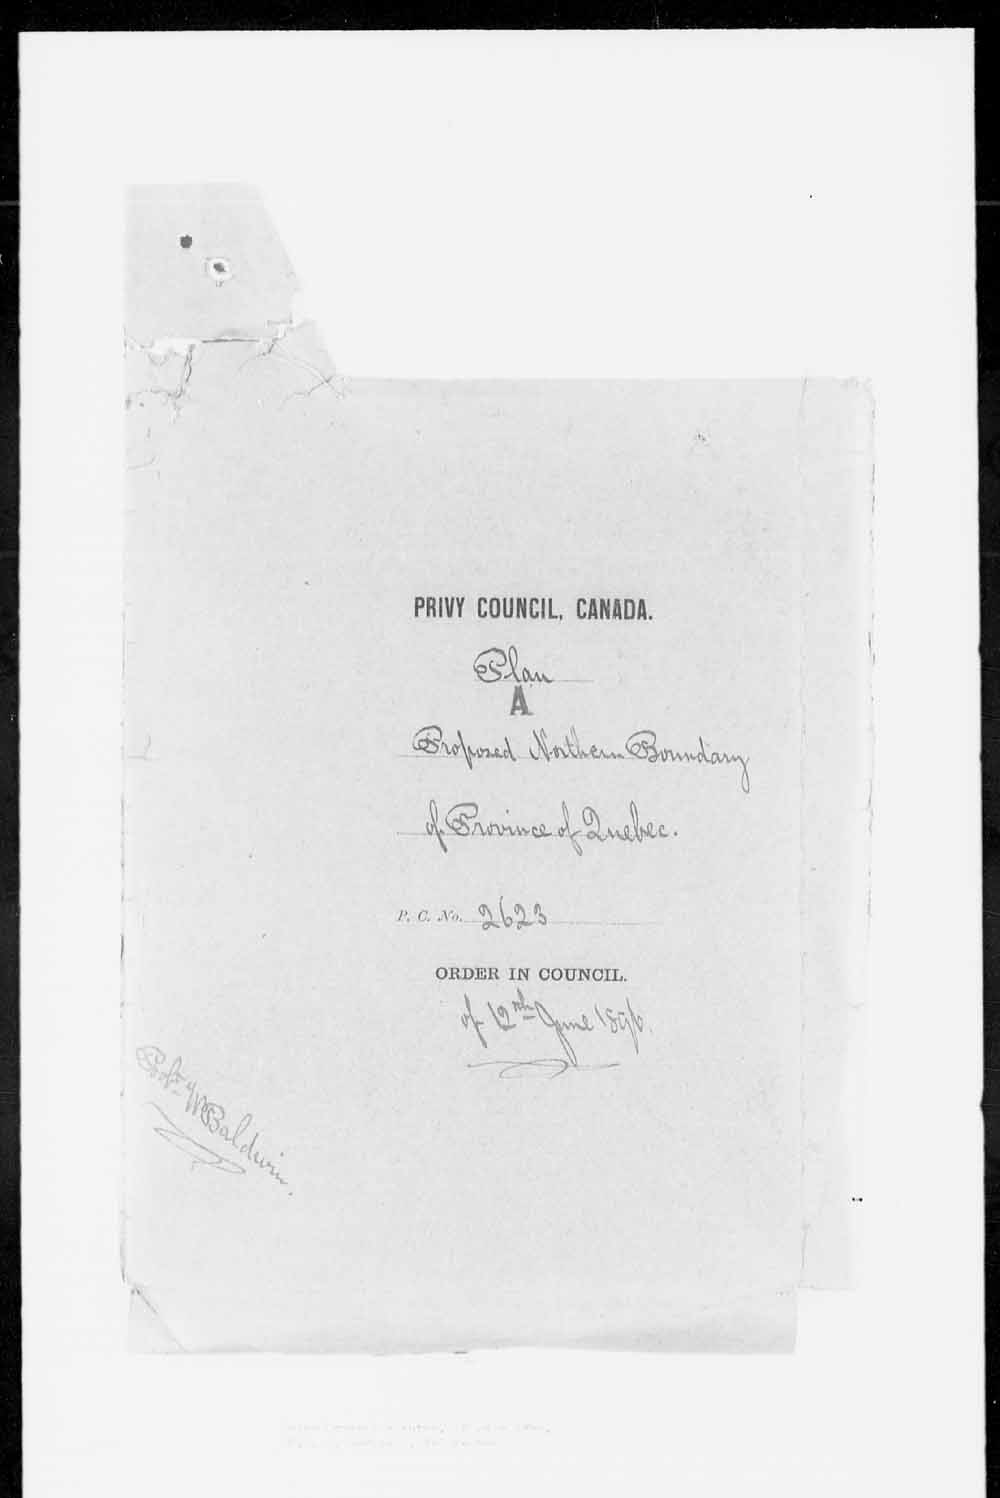 Digitized page of Orders in Council for Image No.: e003161800